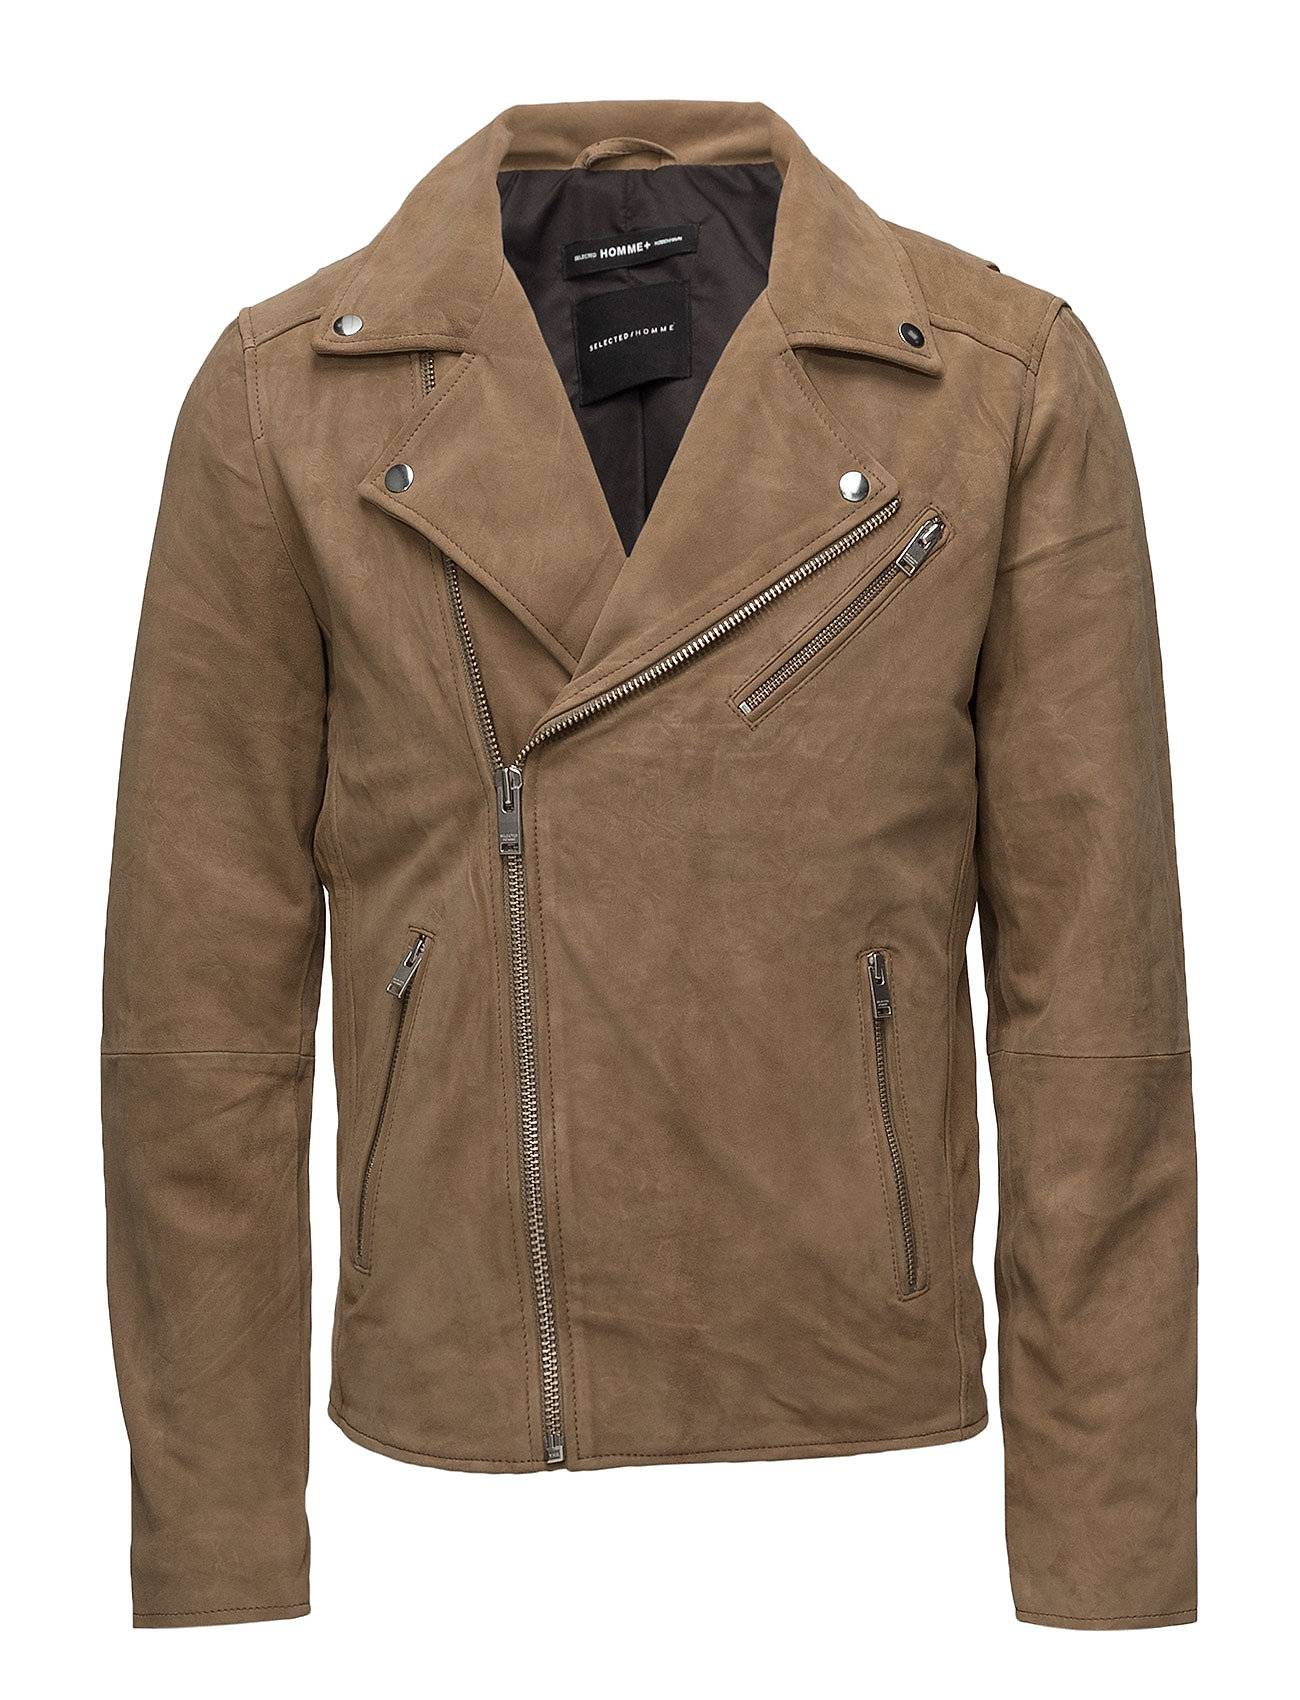 Selected Homme Shxbilly Suede Biker Jacket